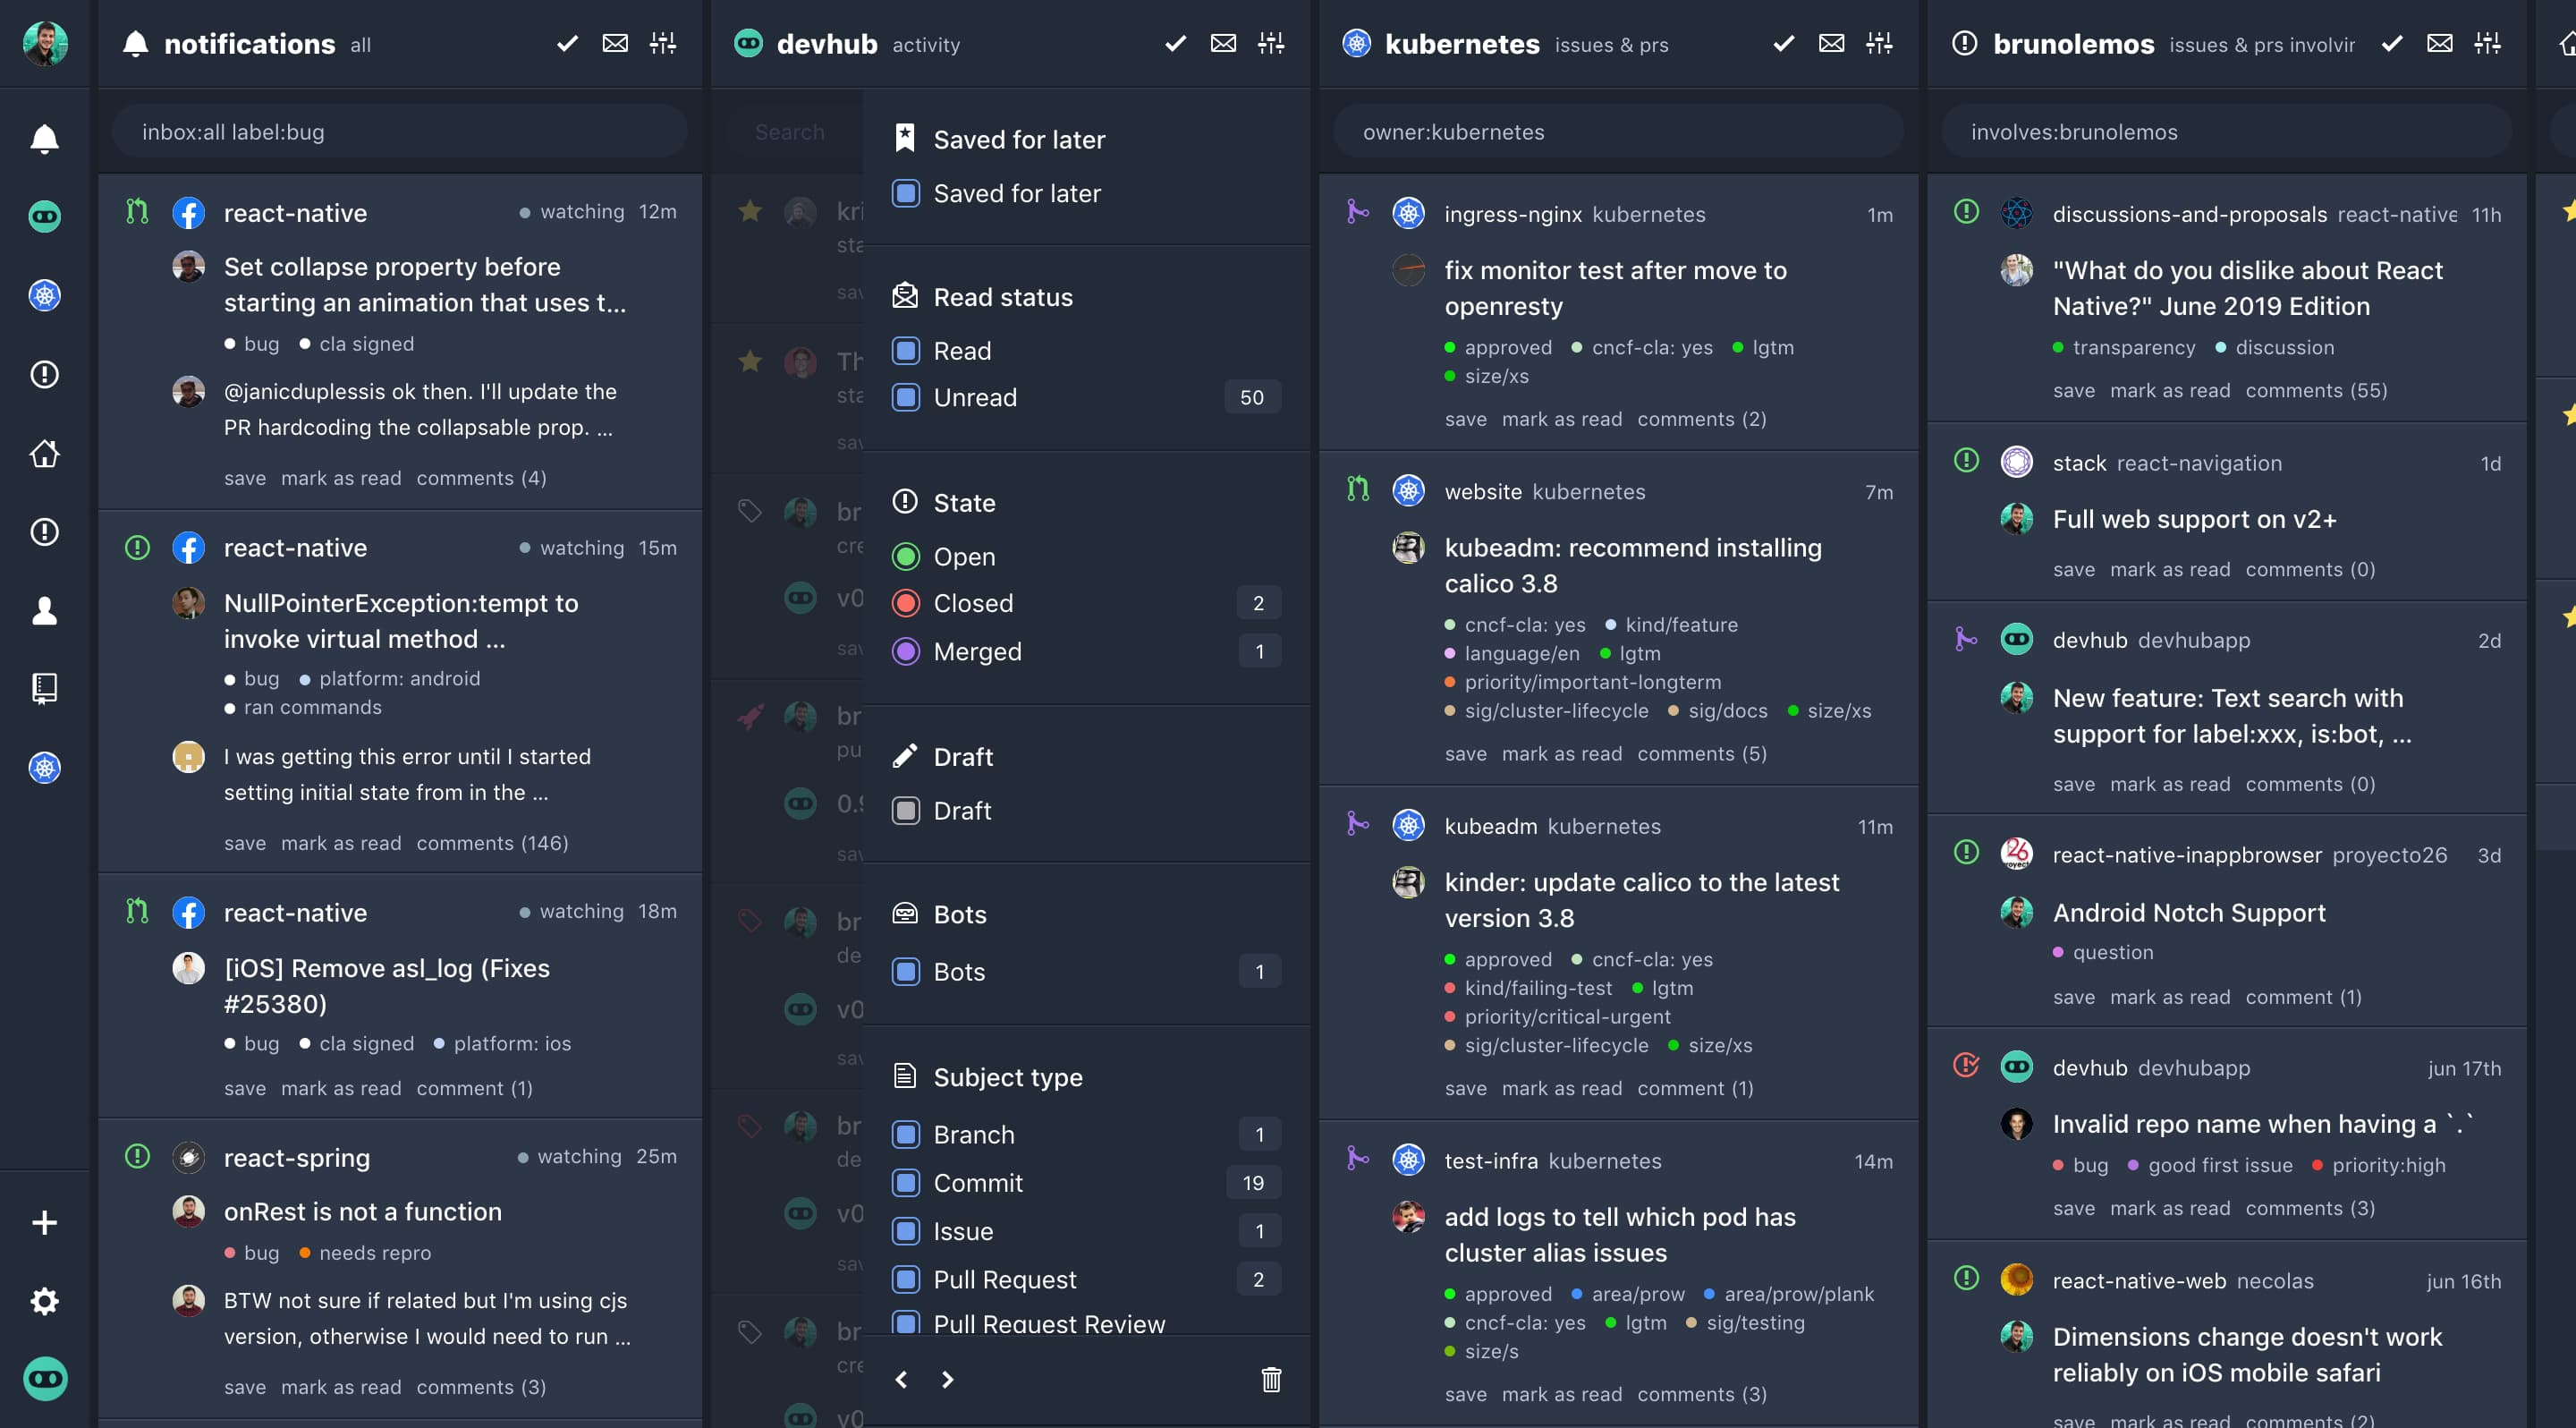 DevHub Desktop - Multi-column view